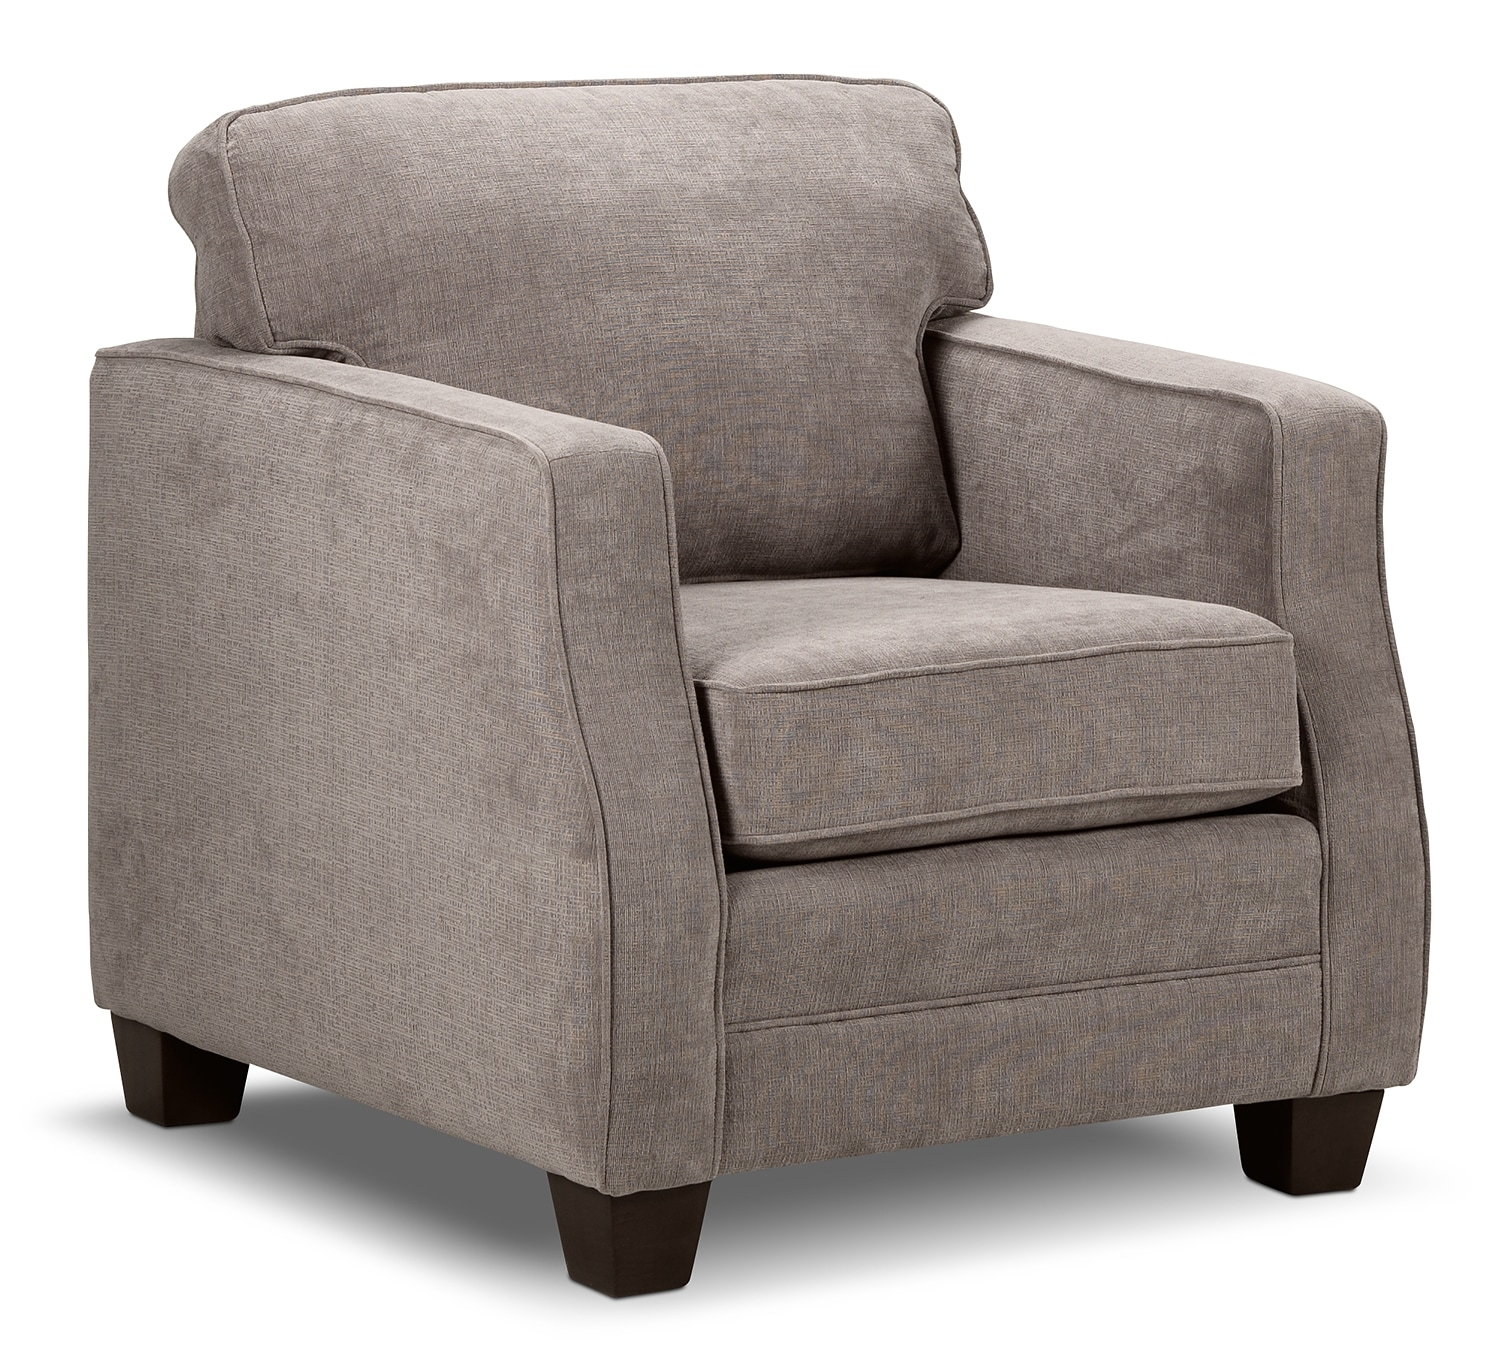 Living Room Furniture - Agnes Chair - Taupe